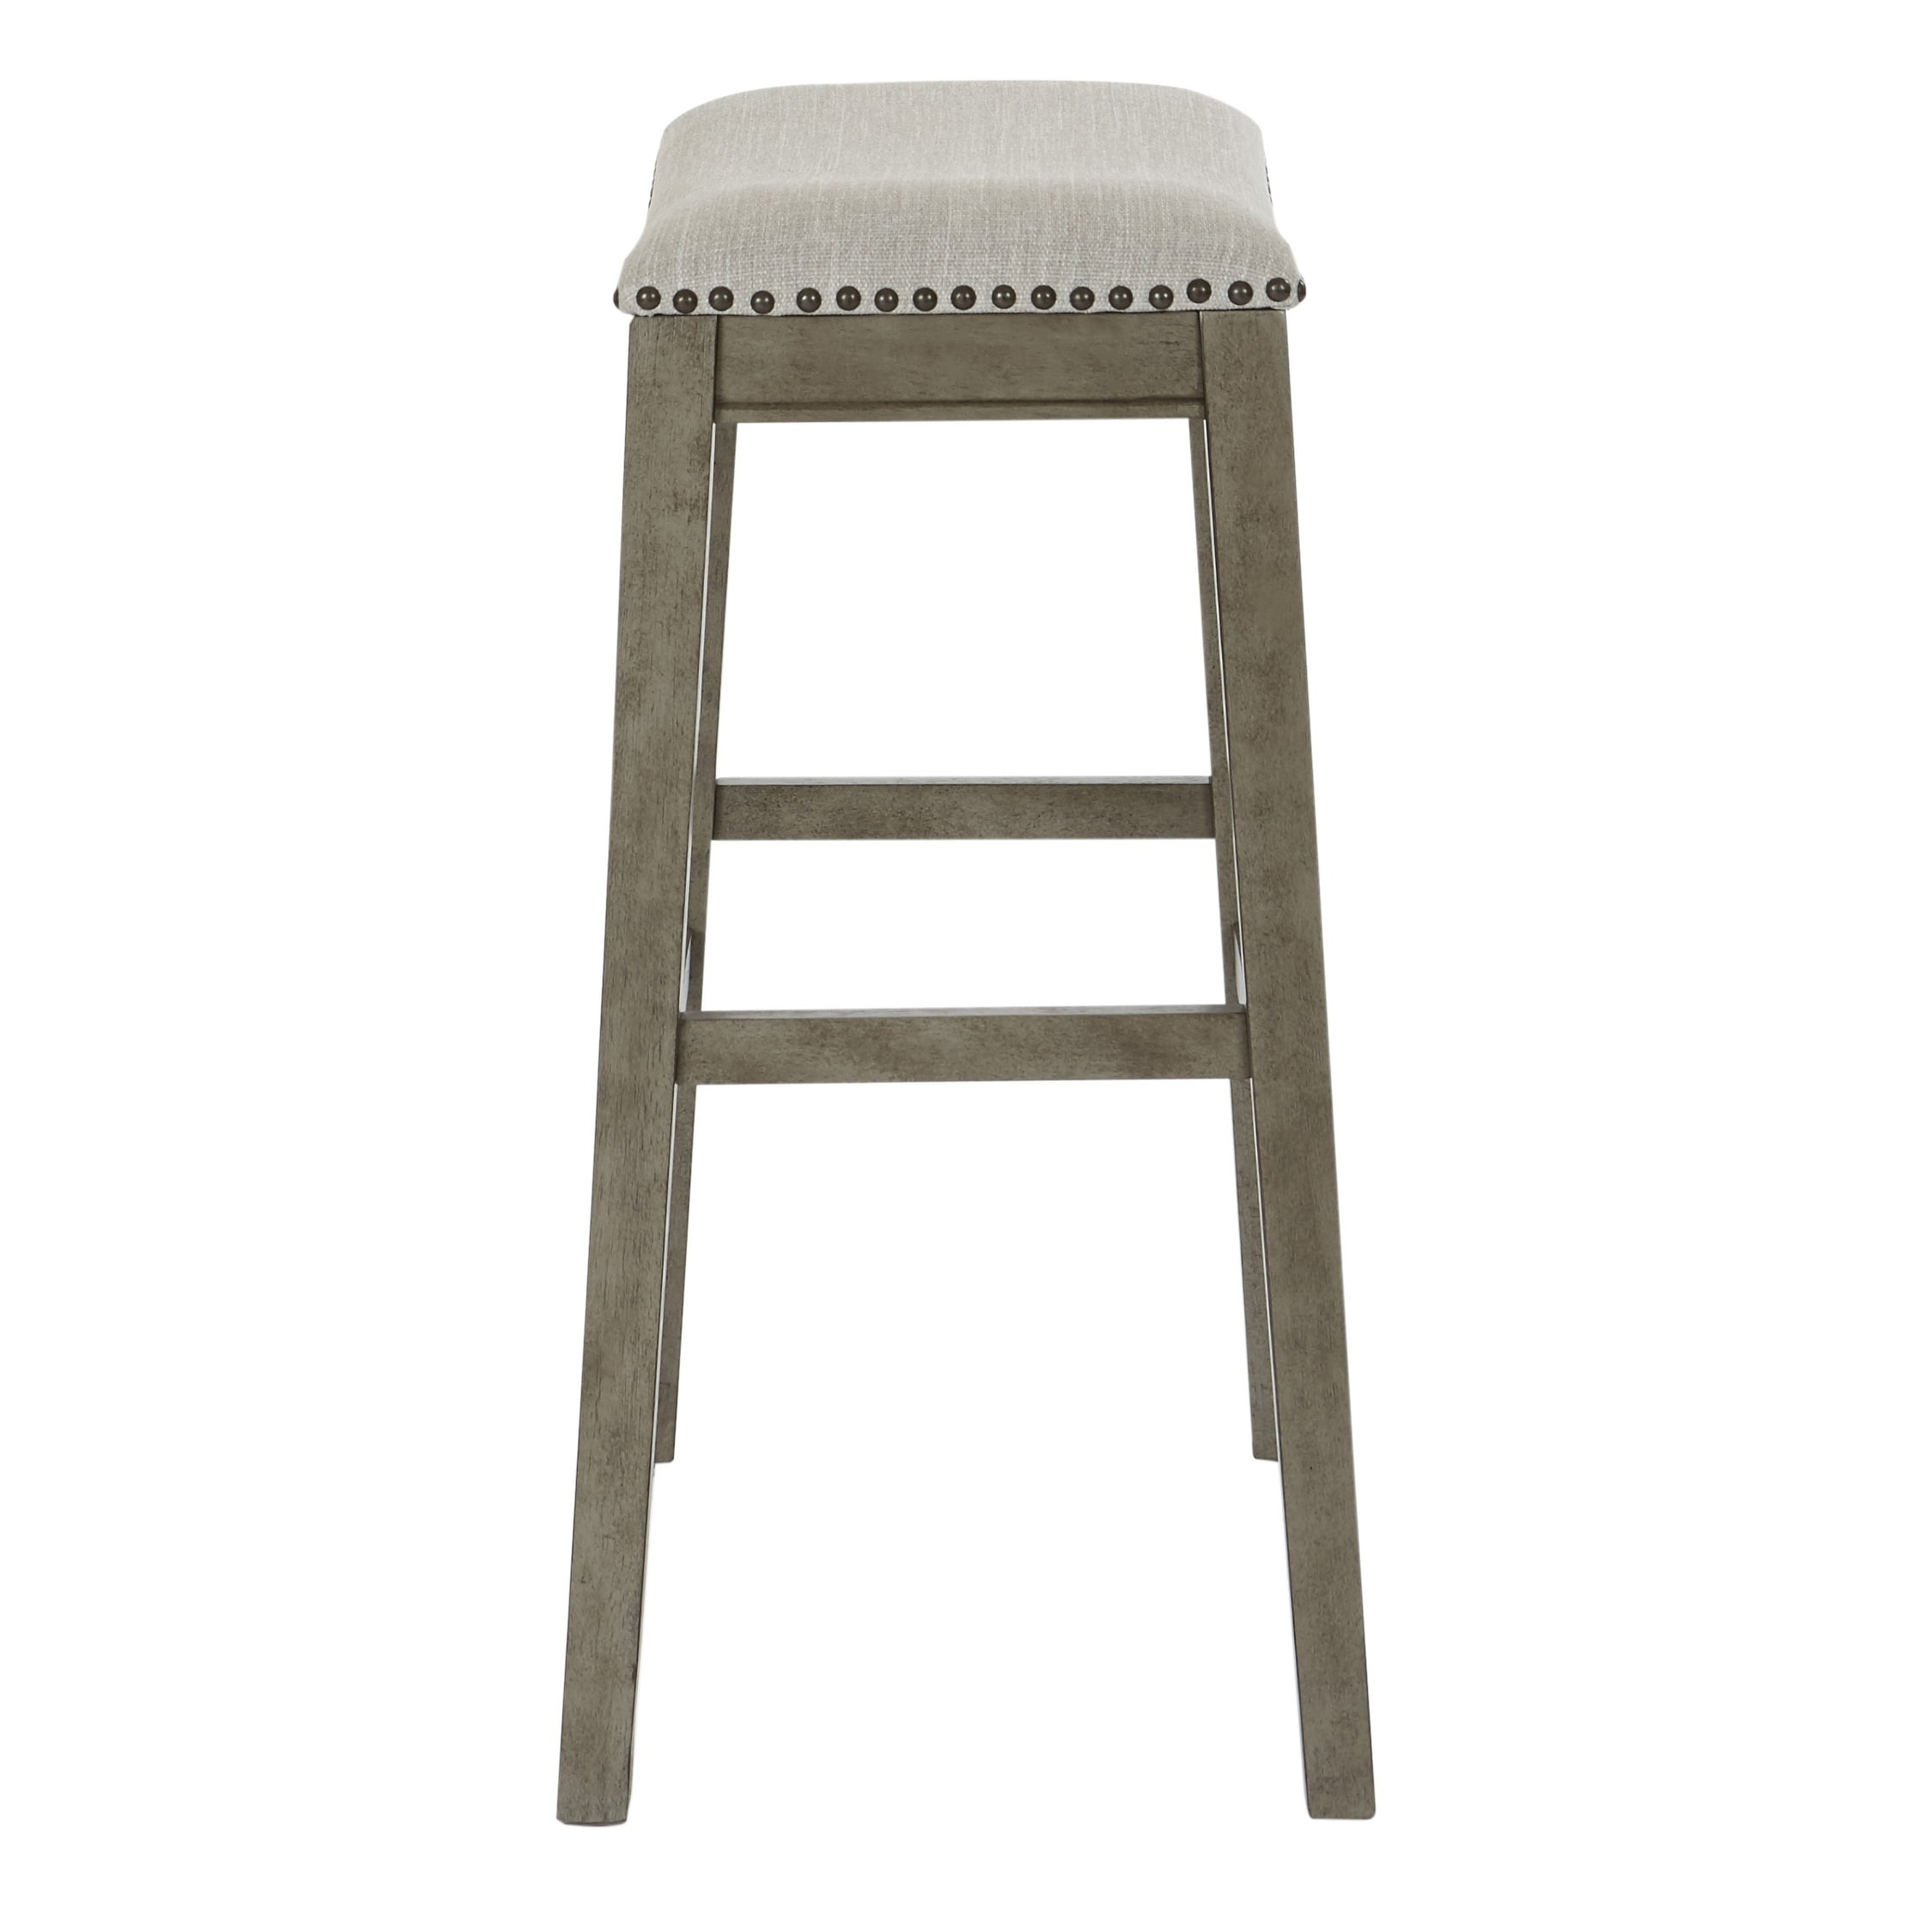 Osp Home Furnishings Metro 28 Inch Bar Height Saddle Stools In Fabric Seat And Antique Base 2 Pack On Free Shipping Today